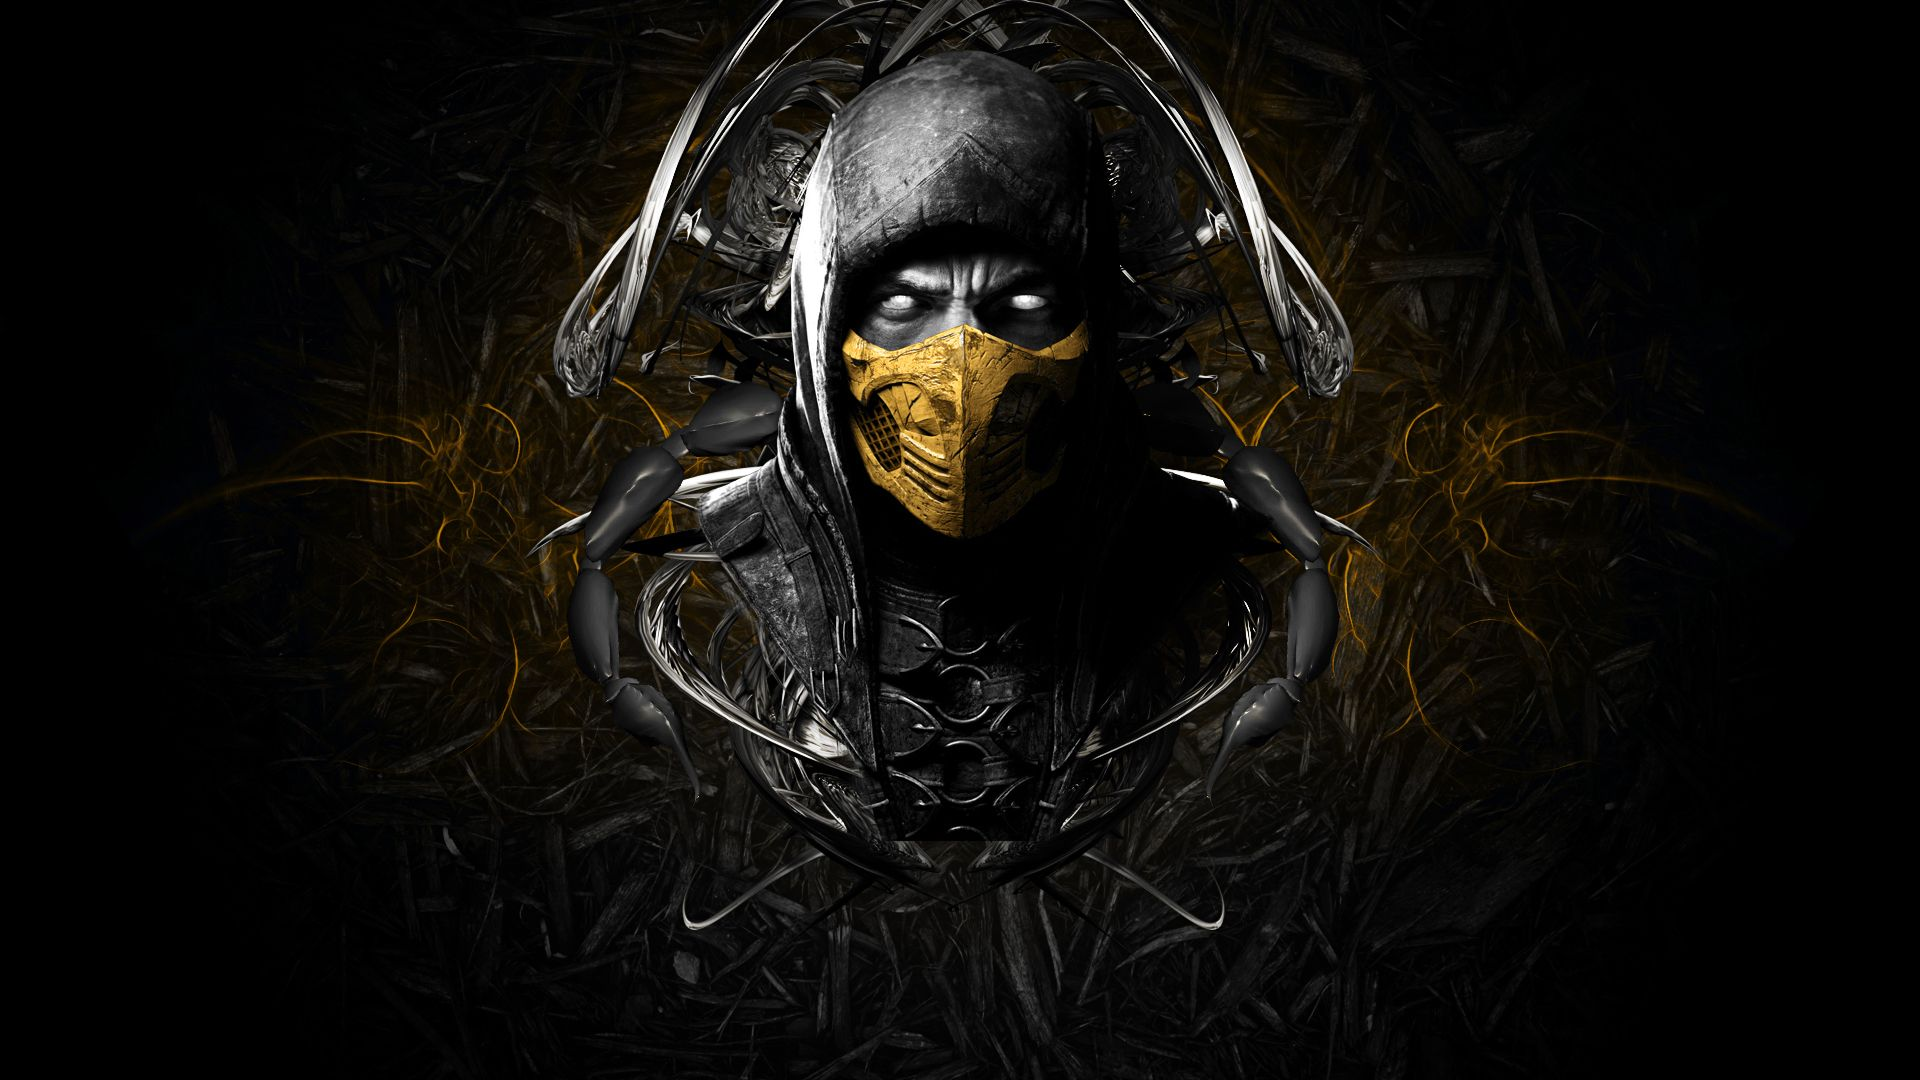 Mortal Kombat Wallpaper Desktop #Pua | Awesomeness | Mortal kombat x wallpapers, Mortal Kombat ...